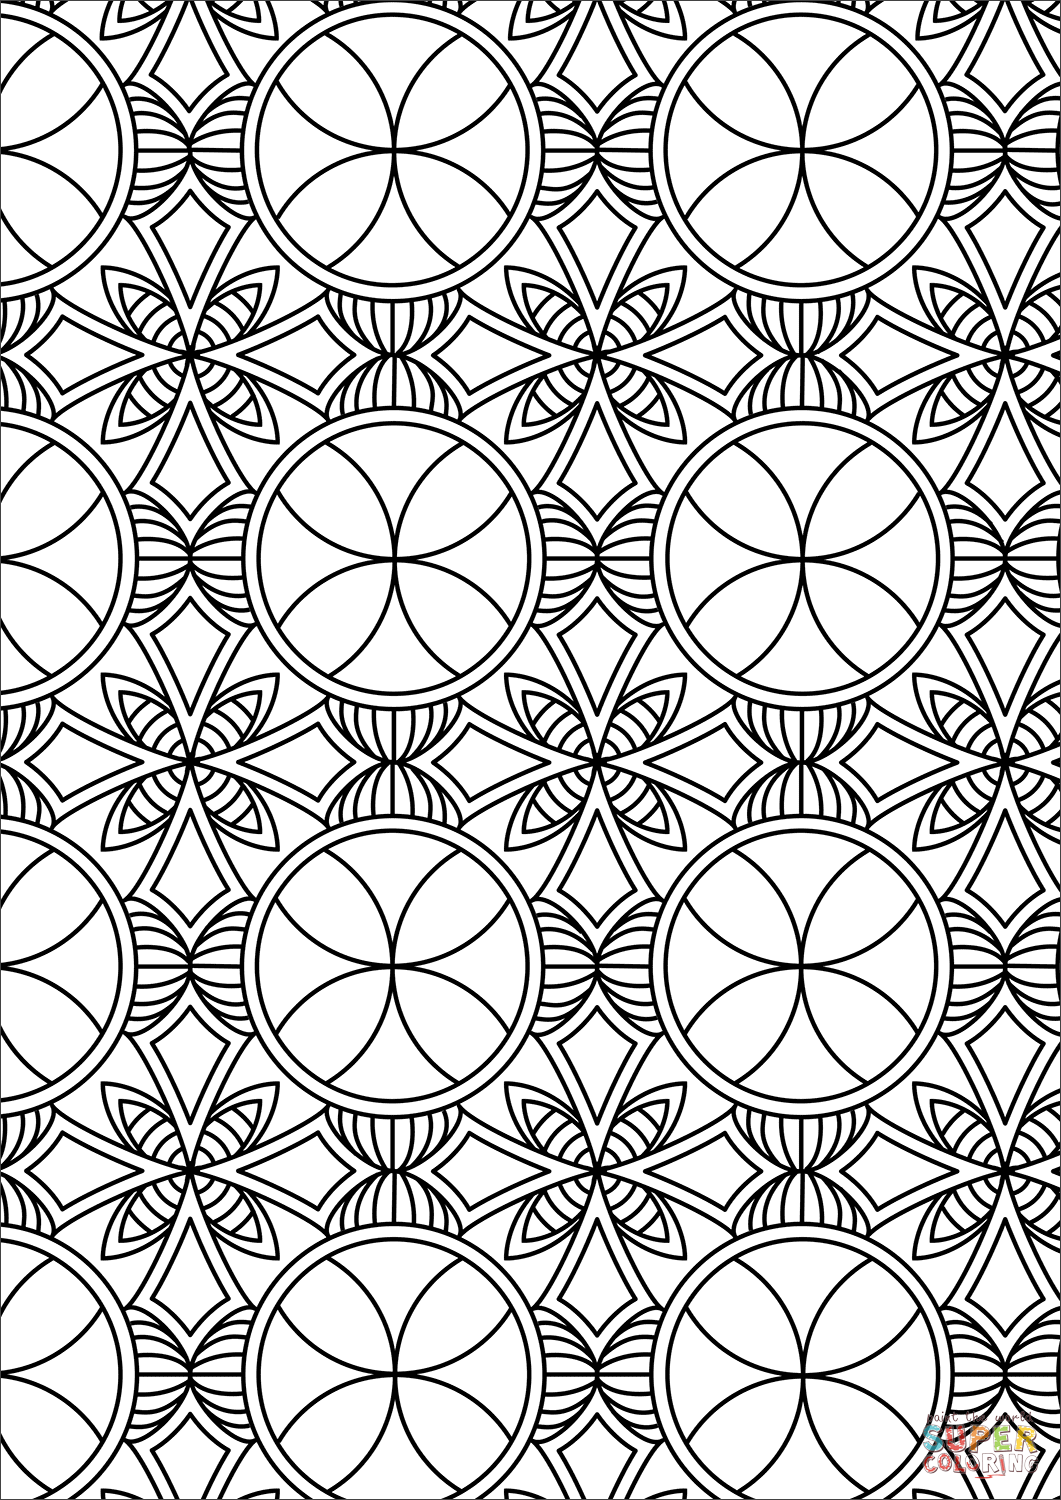 free abstract coloring pages abstract pattern coloring page free printable coloring pages pages free coloring abstract